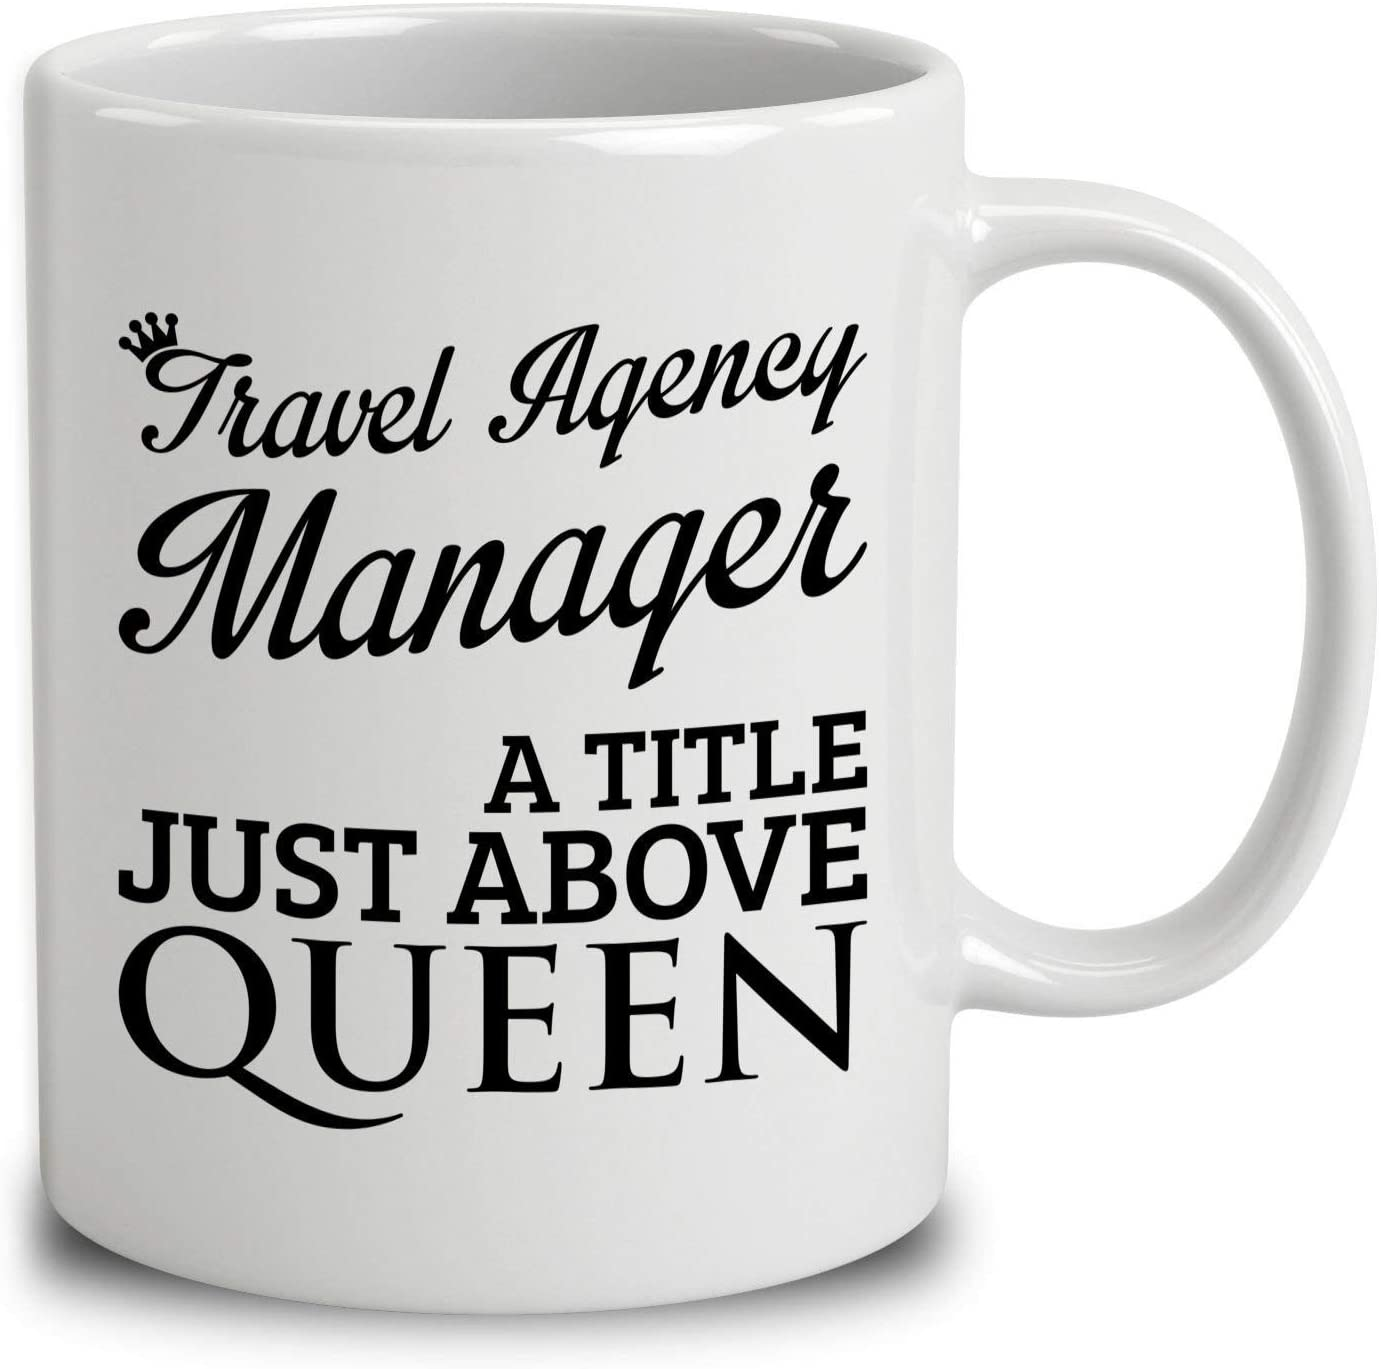 Travel Agency Manager A Title Just Above Queen Coffee Mug (White, 11 oz)